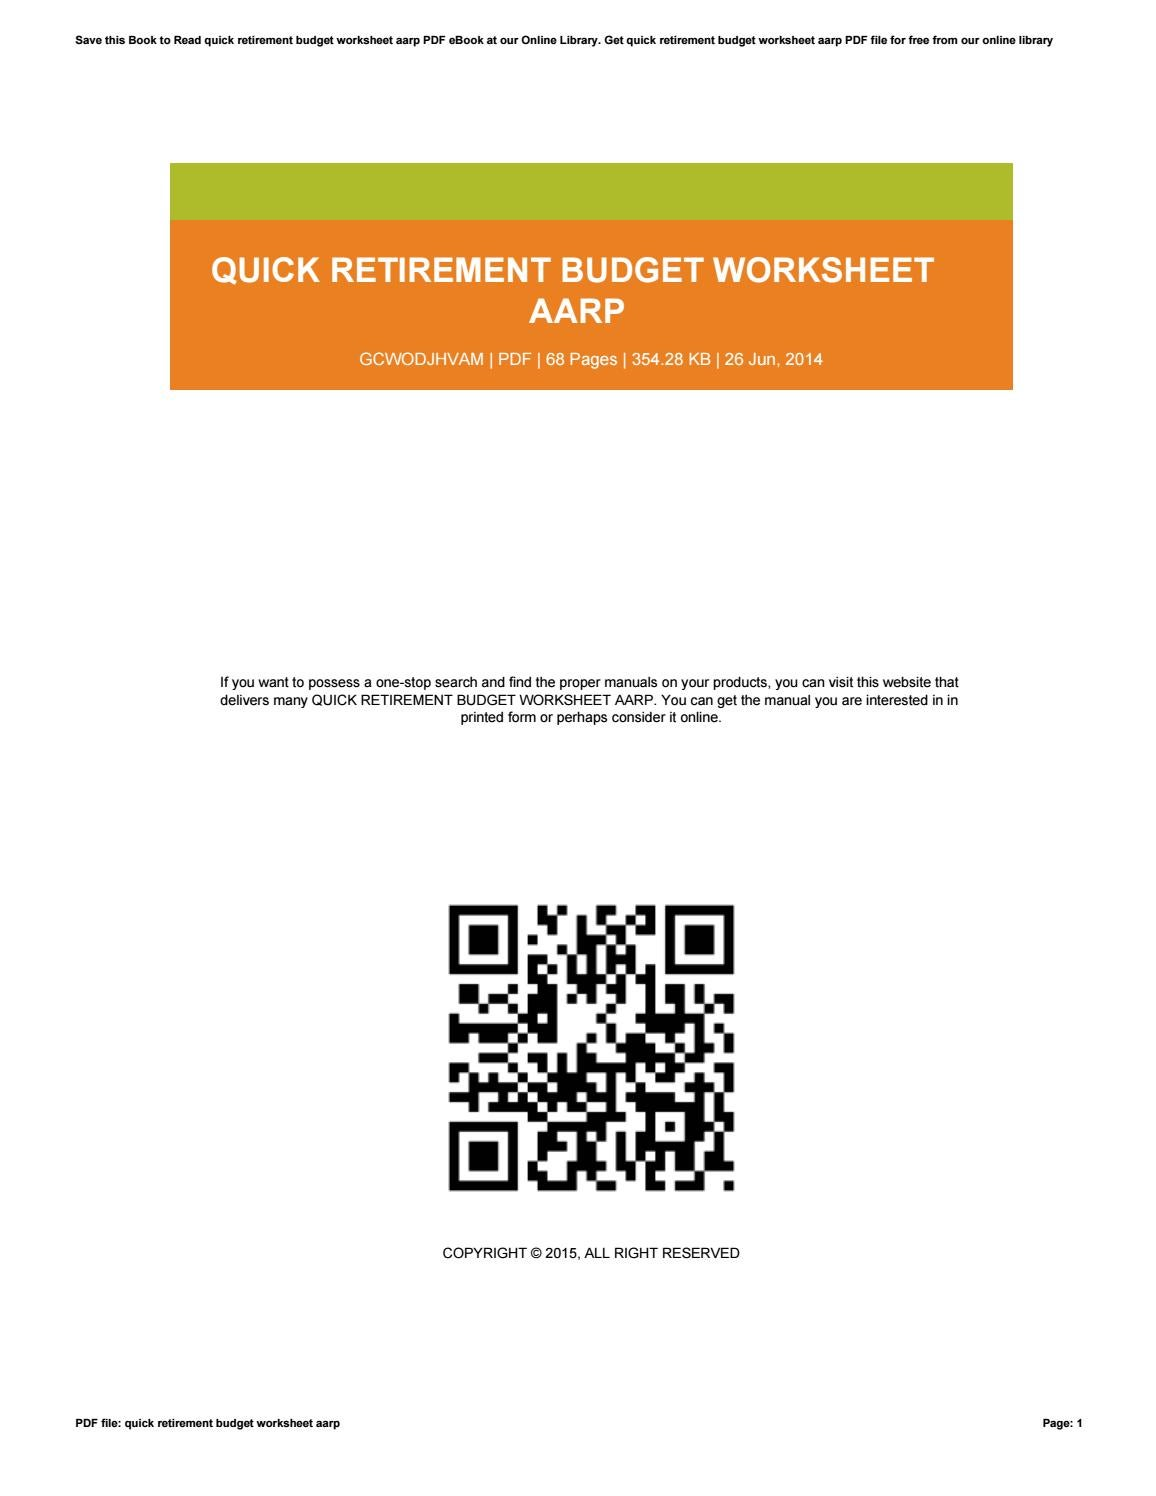 quick retirement budget worksheet aarp by laurelsipes4449 issuu